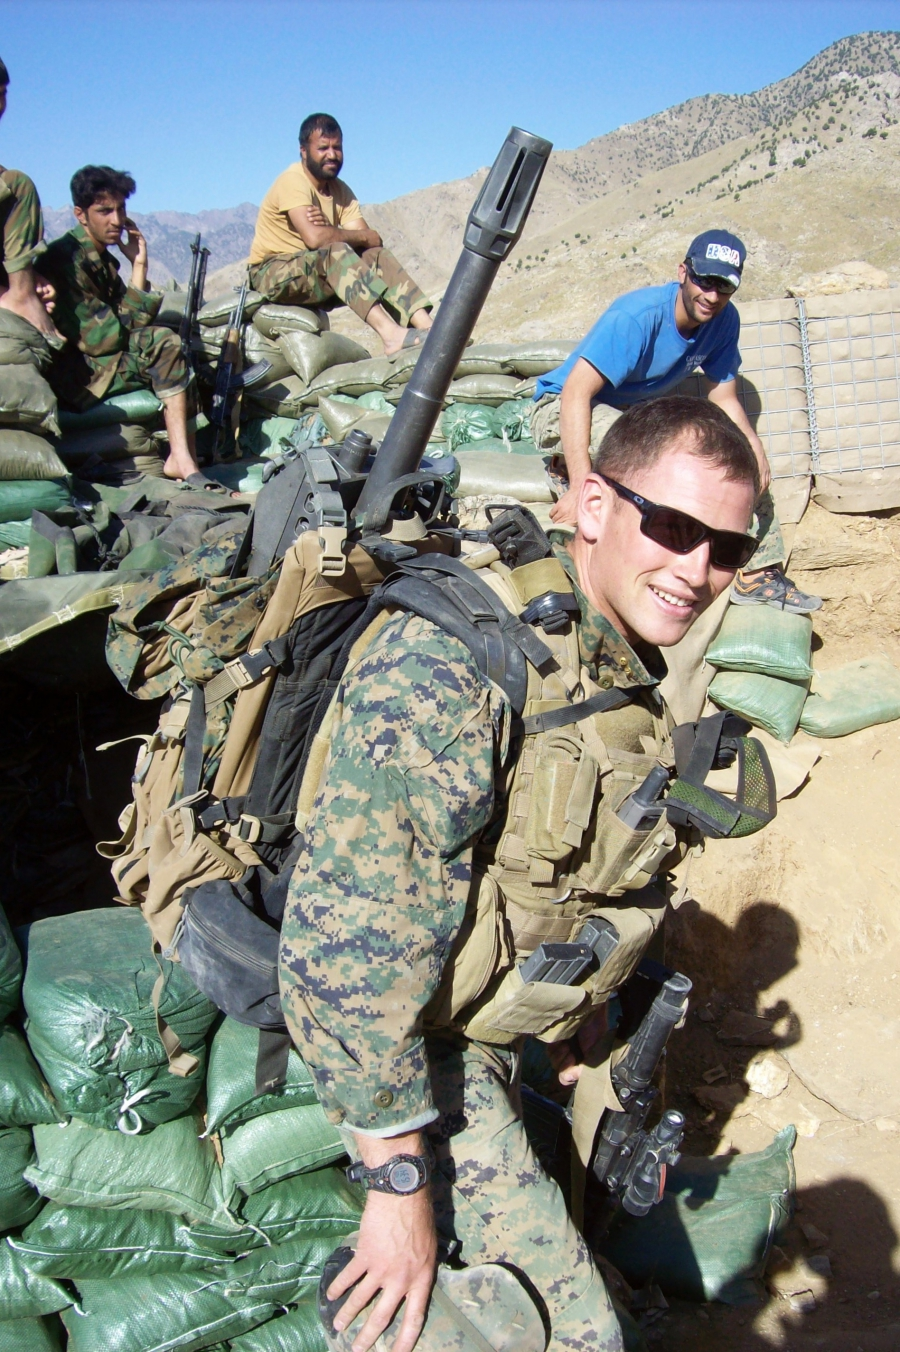 Marine Captain Graham Pulliam near Combat Outpost Rocco, Uzbin Valley, Kapisa Province, Afghanistan, summer 2009.